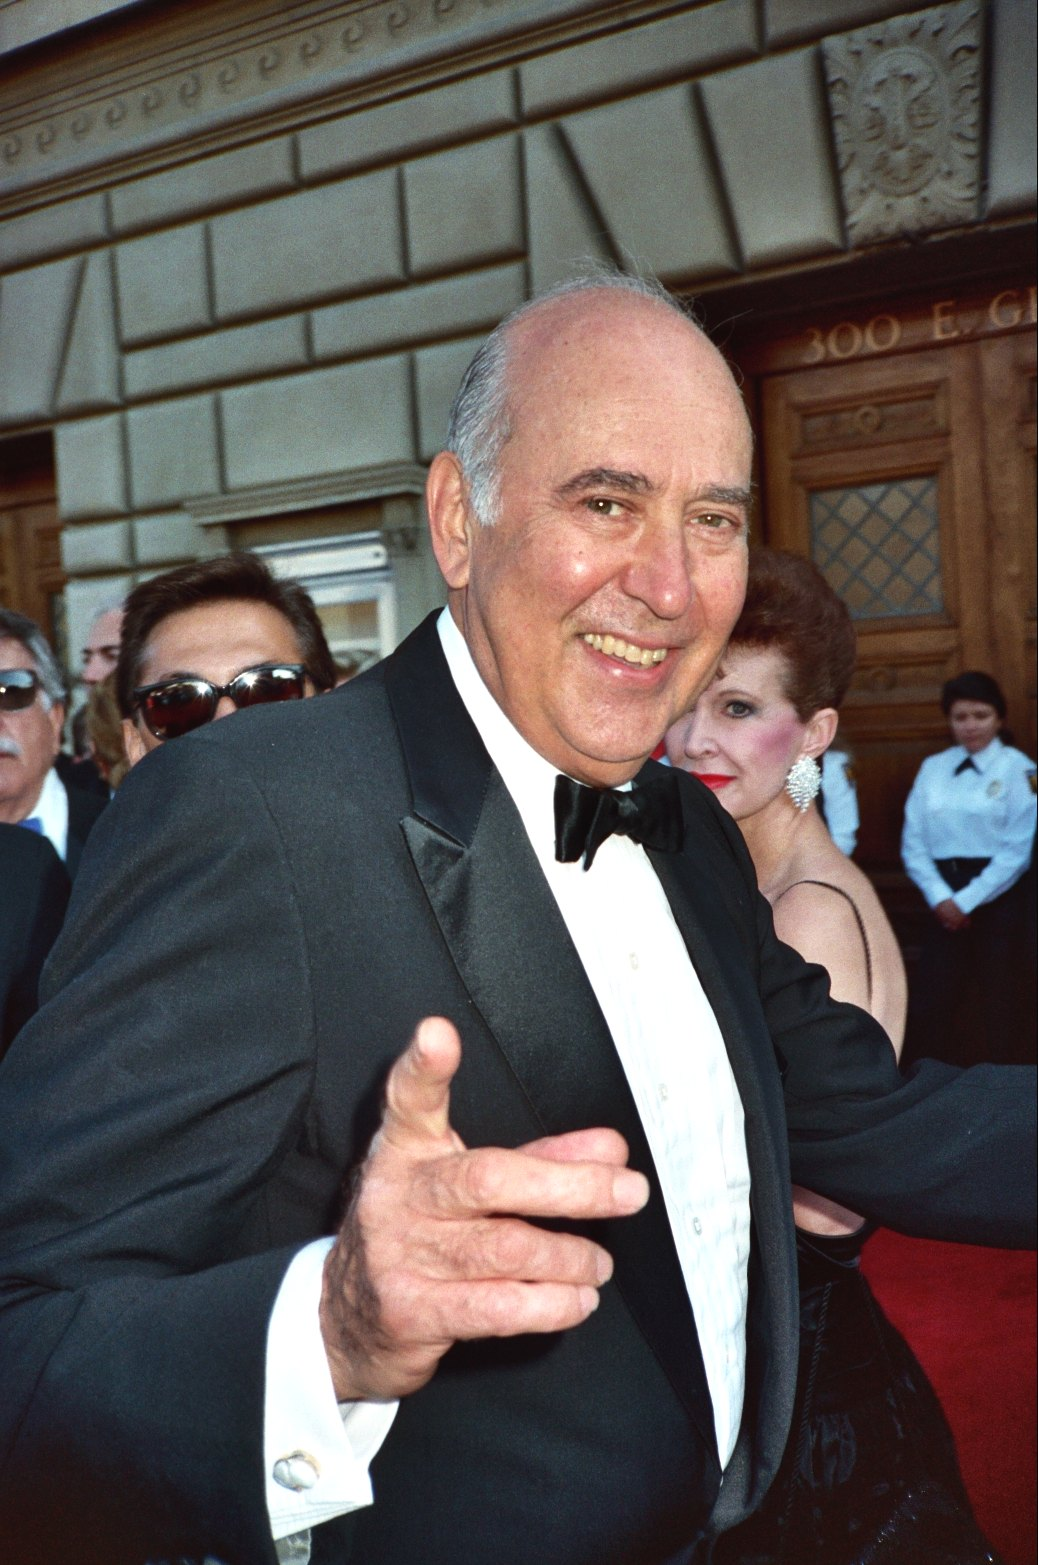 http://upload.wikimedia.org/wikipedia/commons/e/e7/Carl_Reiner.jpg